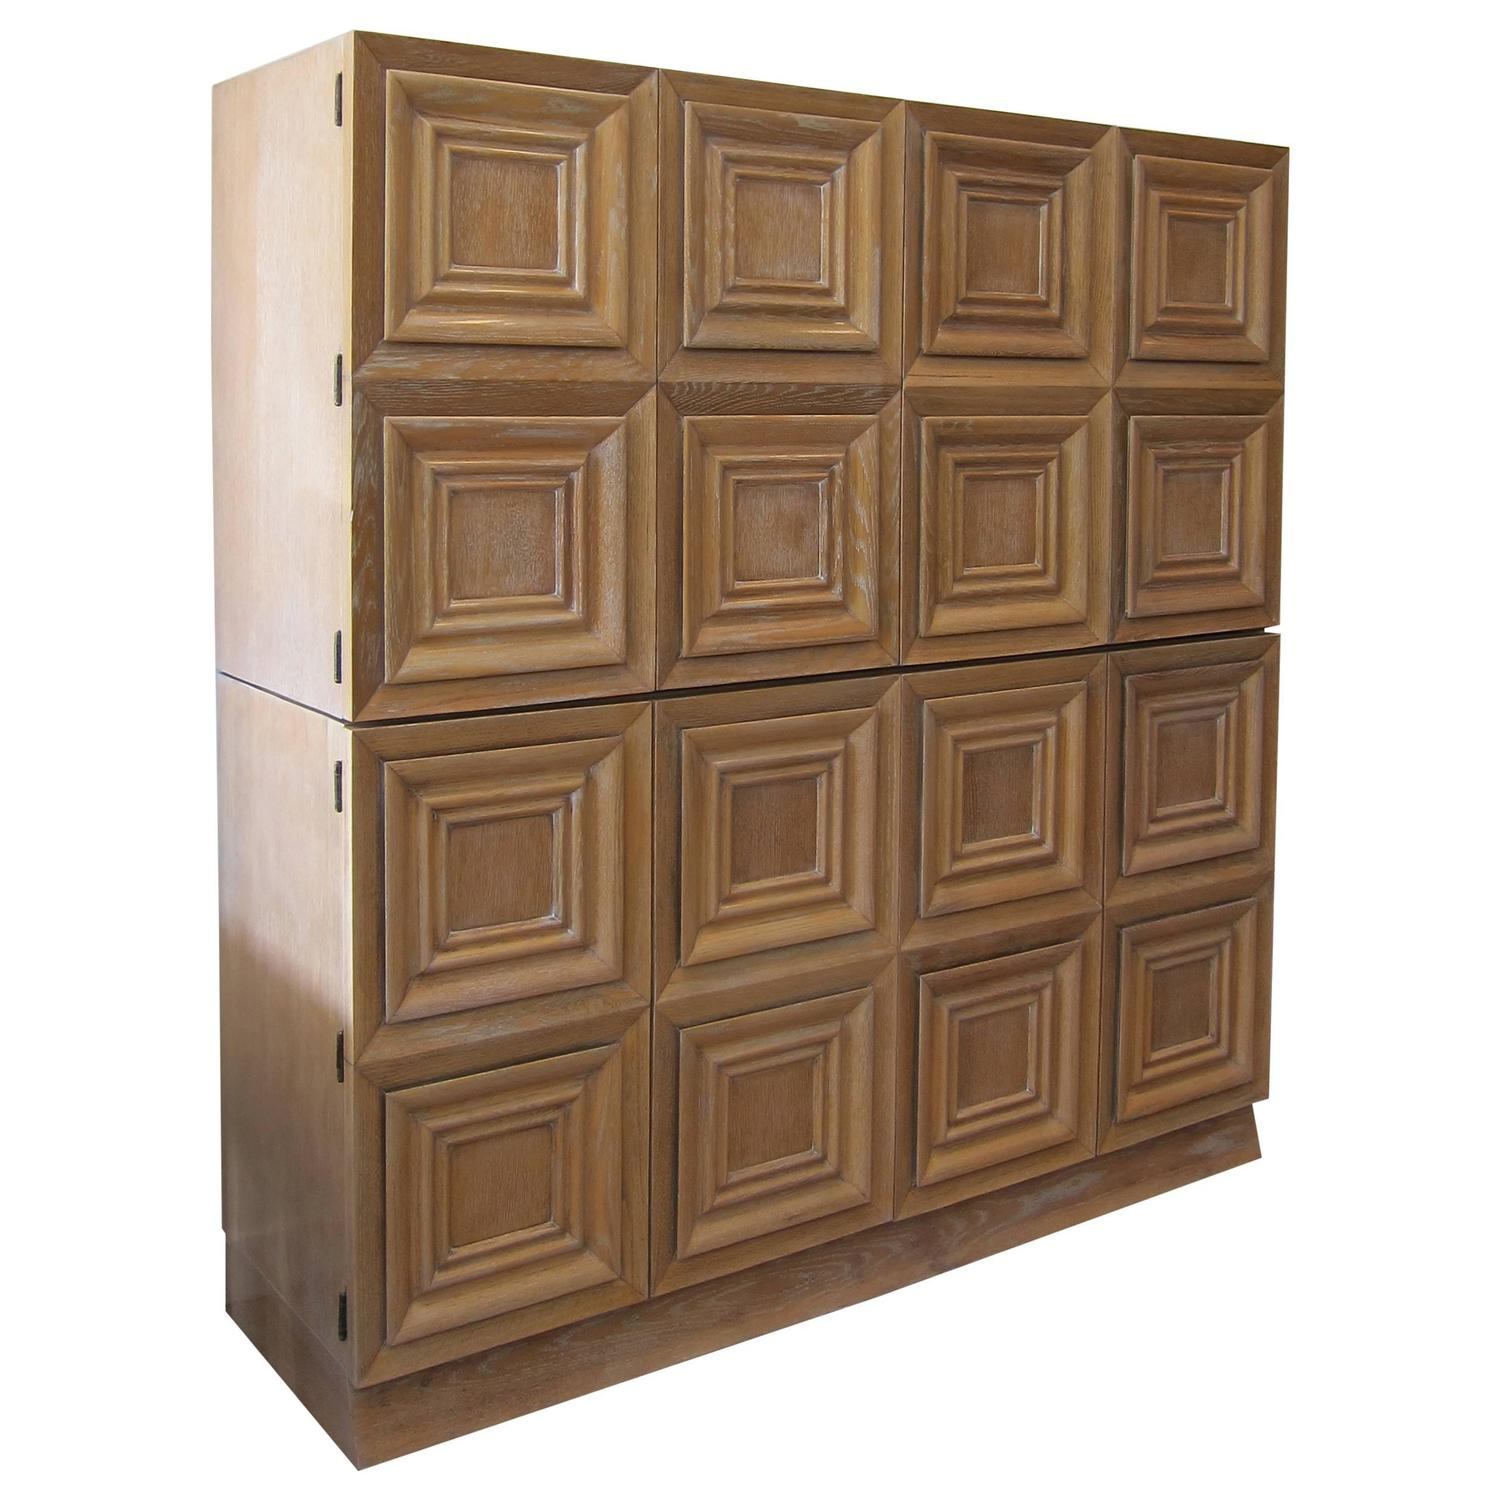 Cerused Oak Kitchen Cabinets Gorgeous Cerused Oak Kitchen: French 1950s Cerused Oak Cabinet At 1stdibs